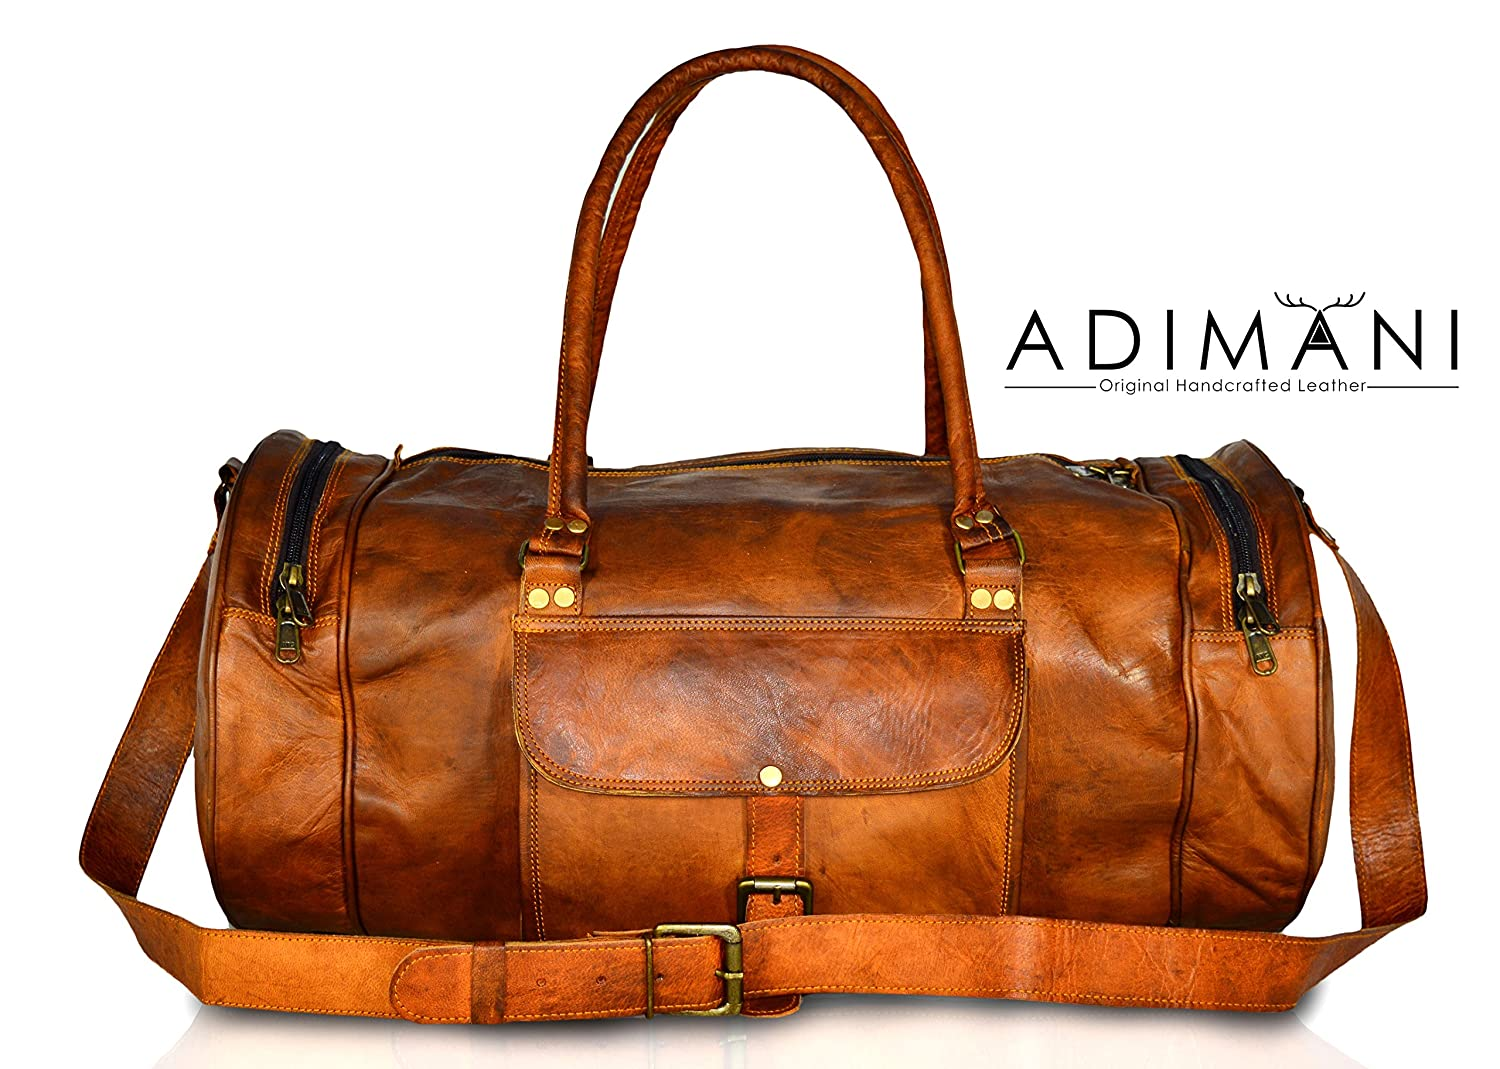 ... 06a59b96ae5 Adimani Vintage Leather Gym Workout Travel Weekend Bag For  Men - Brown (X- ... bf6533444a4ab